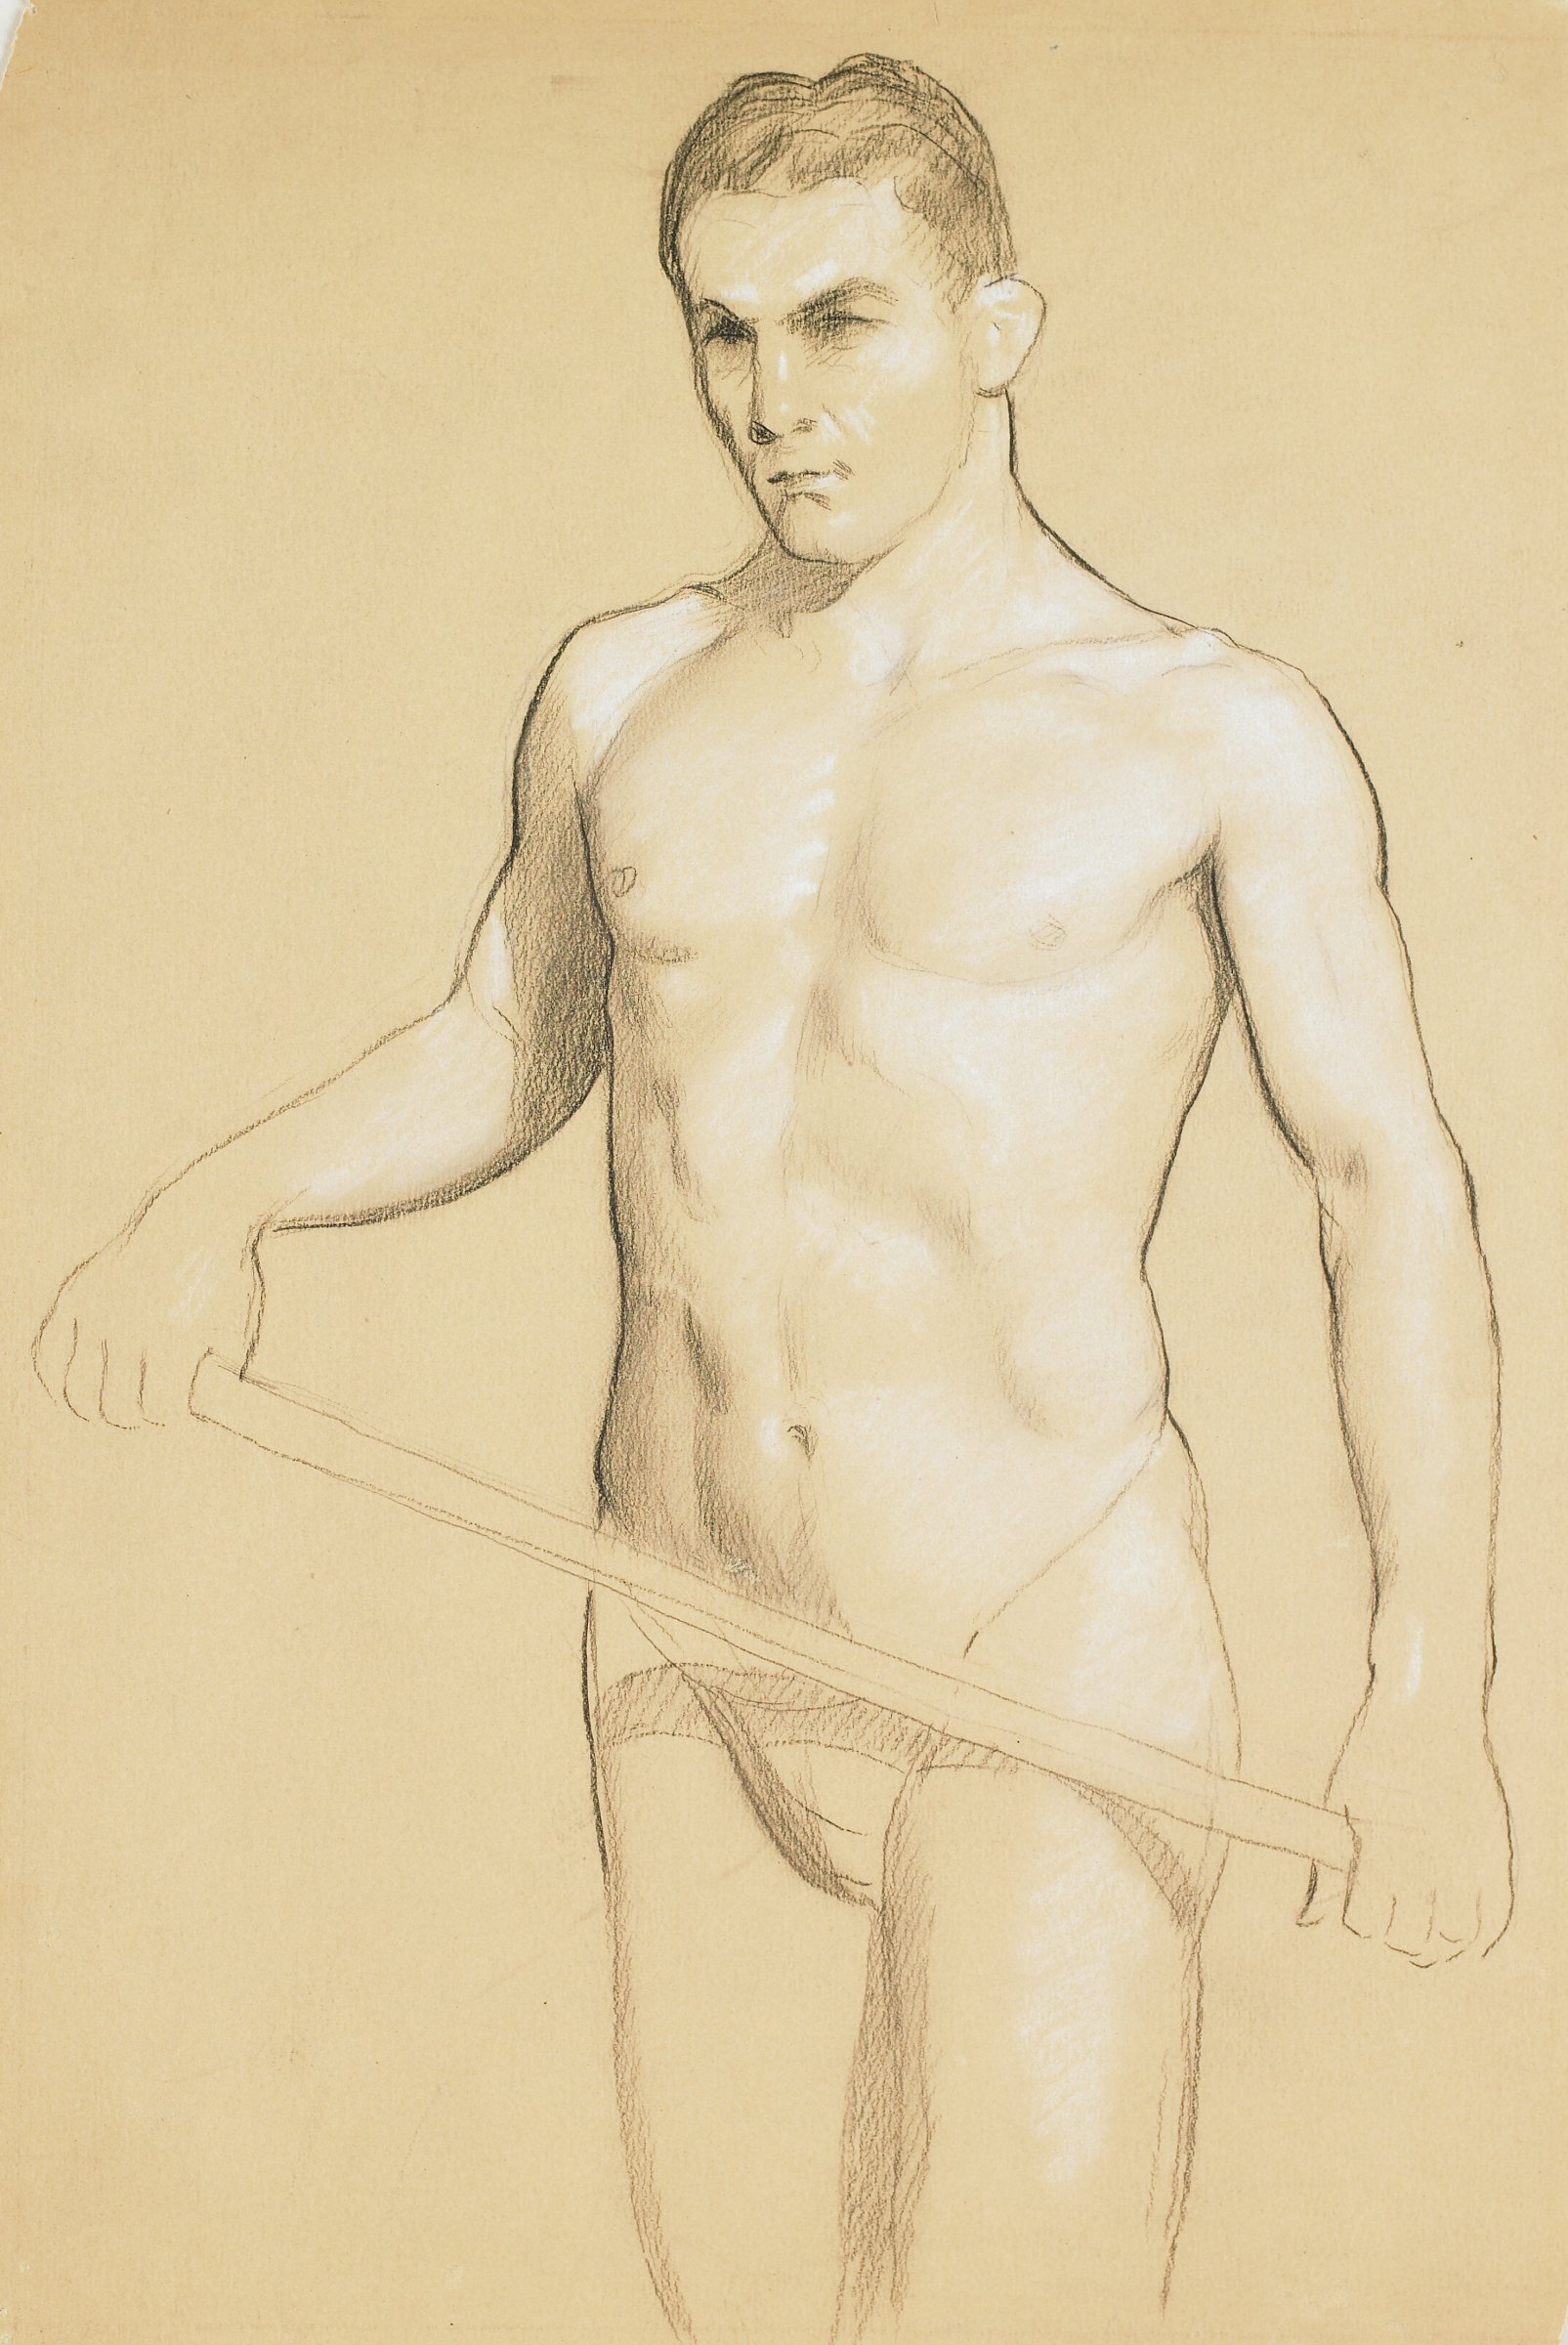 Three-quarters-length male figure study; subject wears loincloth and holds a stick which extends across his waist